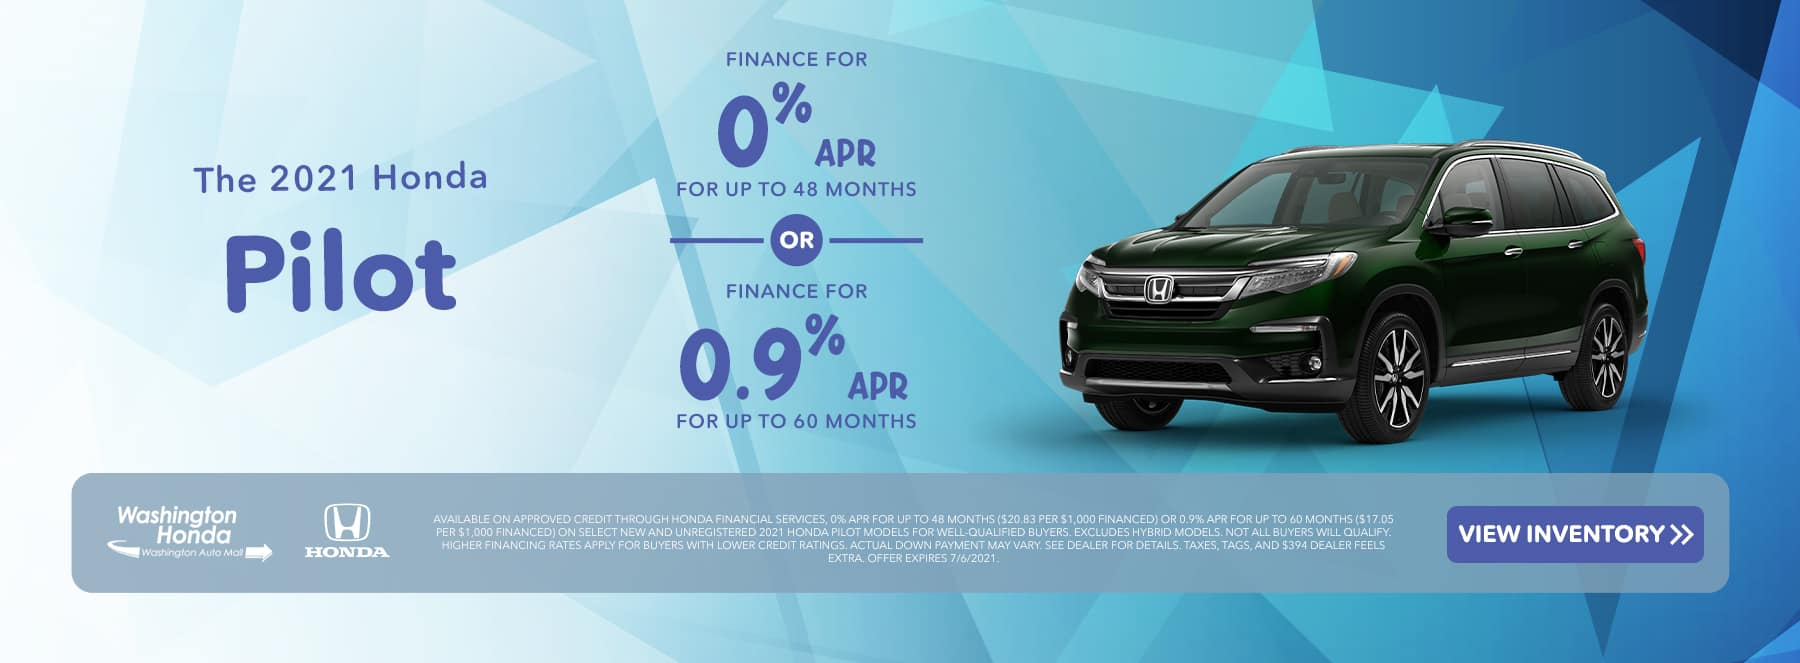 The 2021 Honda Pilot Finance for 0% APR for 48 MO OR Finance for 0.9% APR for 60 MO